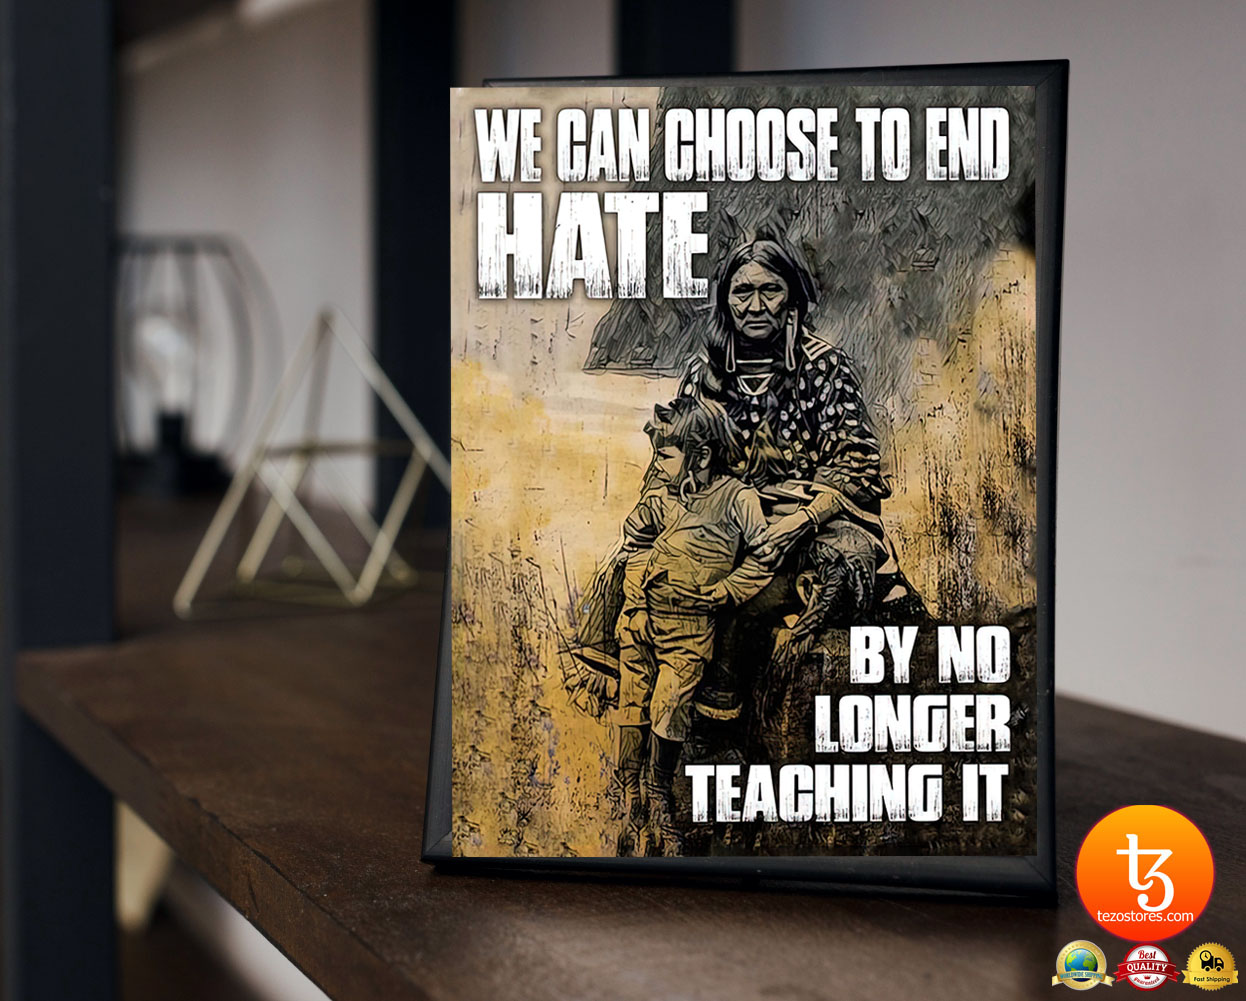 We can choose to end hate by no longer teaching it poster 23